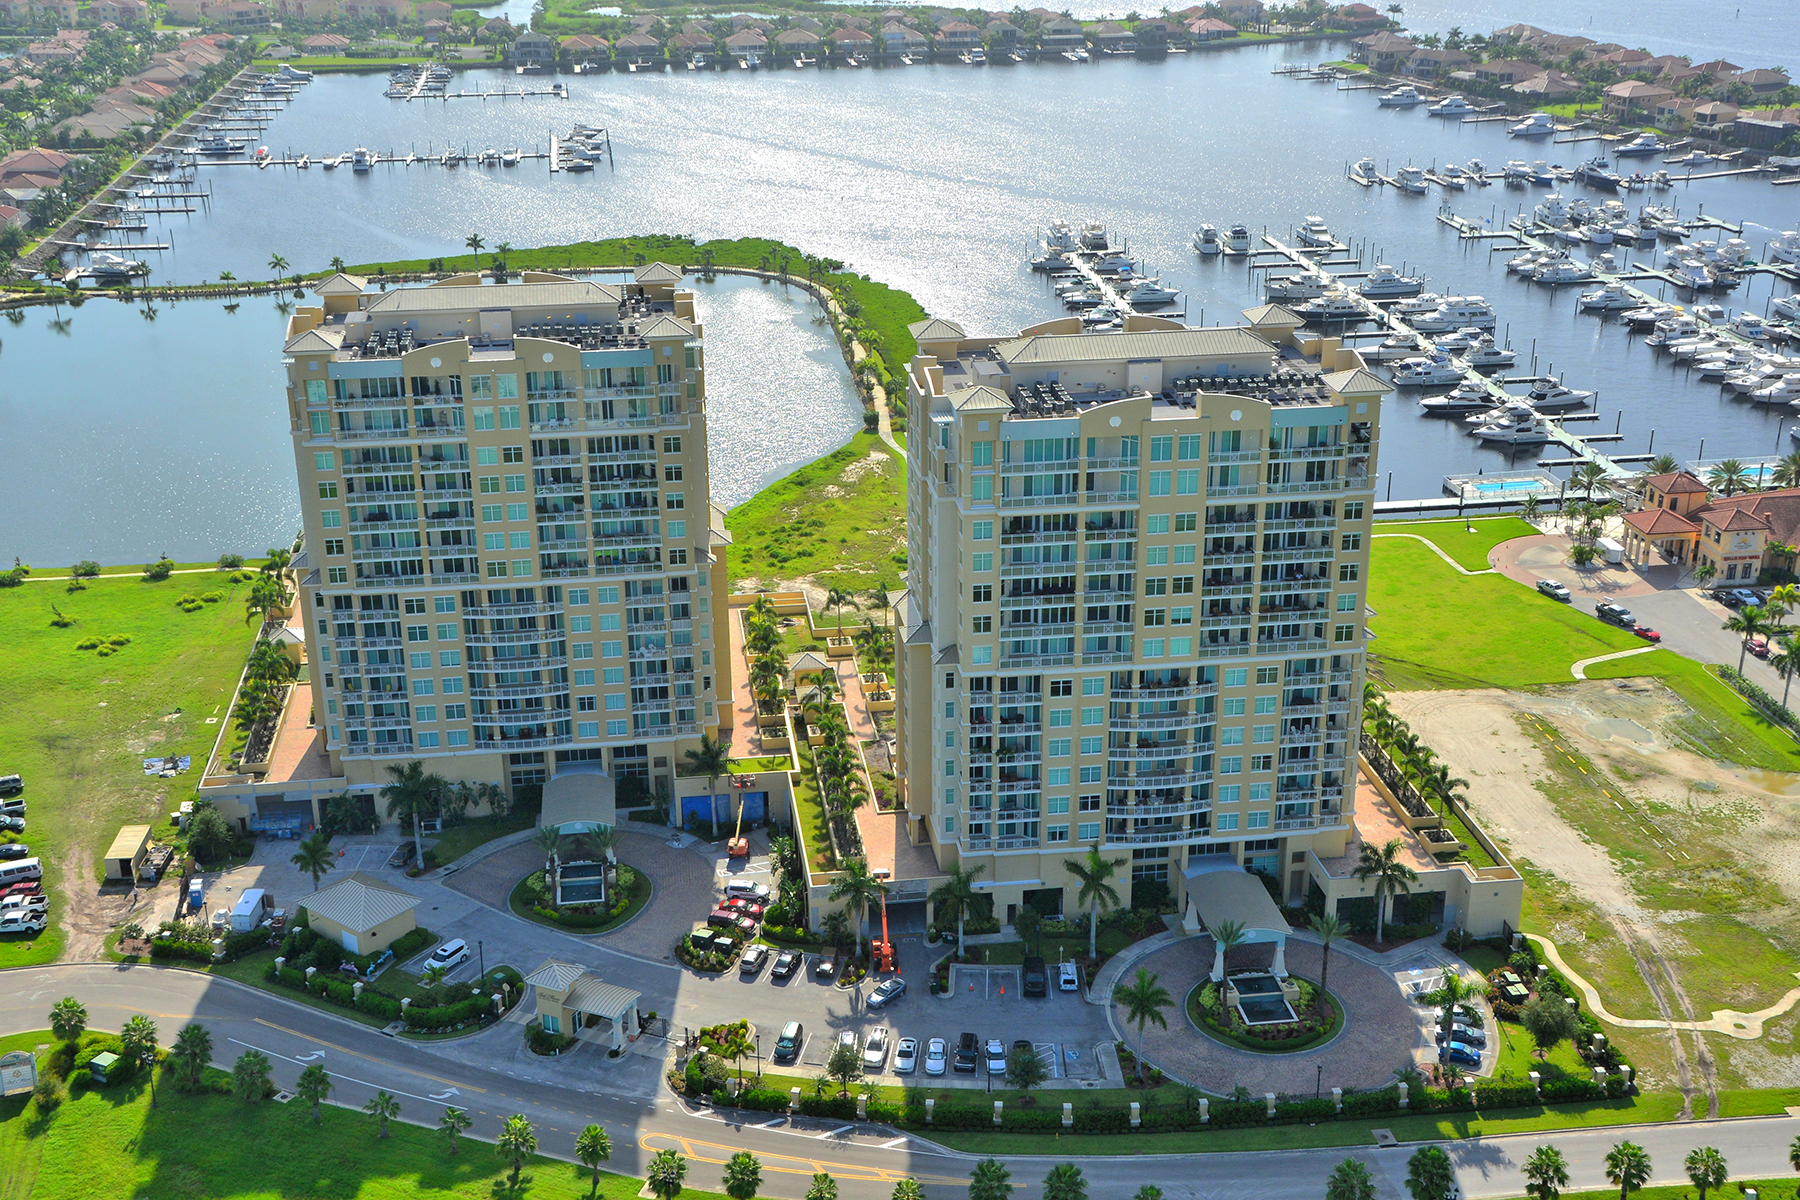 Condominium for Sale at BEL MARE AT RIVIERA DUNES 130 Riviera Dunes Way 704 Palmetto, Florida 34221 United States